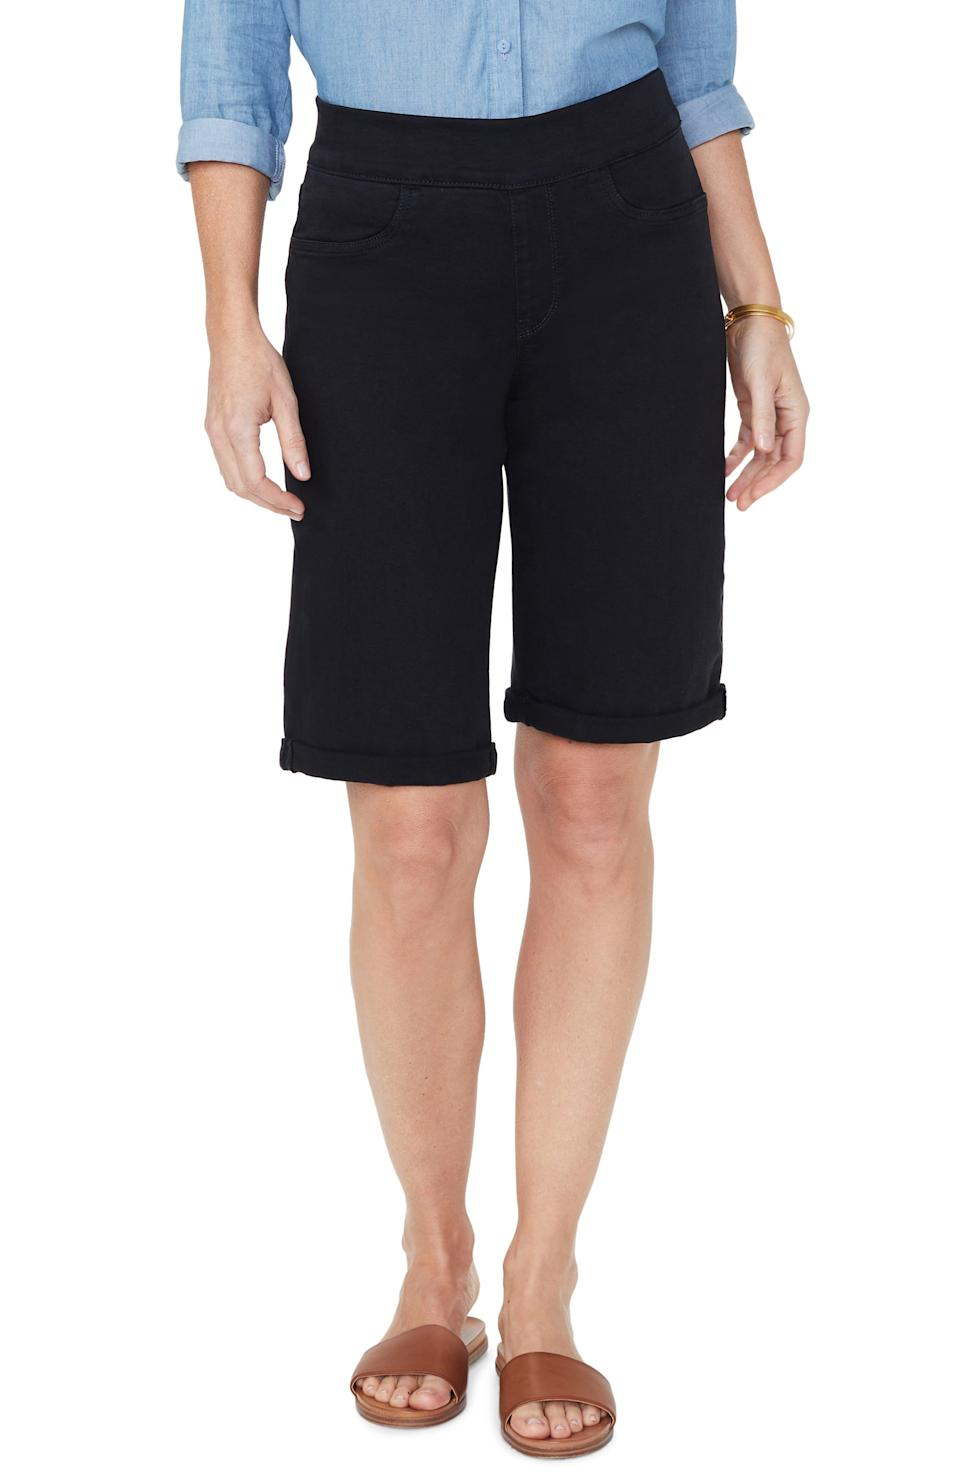 """<p><strong>NYDJ</strong></p><p>nordstrom.com</p><p><strong>$35.40</strong></p><p><a href=""""https://go.redirectingat.com?id=74968X1596630&url=https%3A%2F%2Fwww.nordstrom.com%2Fs%2Fnydj-roll-cuff-pull-on-denim-shorts%2F5295447&sref=https%3A%2F%2Fwww.thepioneerwoman.com%2Ffashion-style%2Fg36608512%2Fbest-high-waisted-shorts%2F"""" rel=""""nofollow noopener"""" target=""""_blank"""" data-ylk=""""slk:Shop Now"""" class=""""link rapid-noclick-resp"""">Shop Now</a></p><p>These black bermuda shorts are great for dressing up or down. The pull-on waistband looks super comfortable and the stretch-denim fabric features lift-tuck technology that helps flatten the tummy and lift the rear.</p>"""